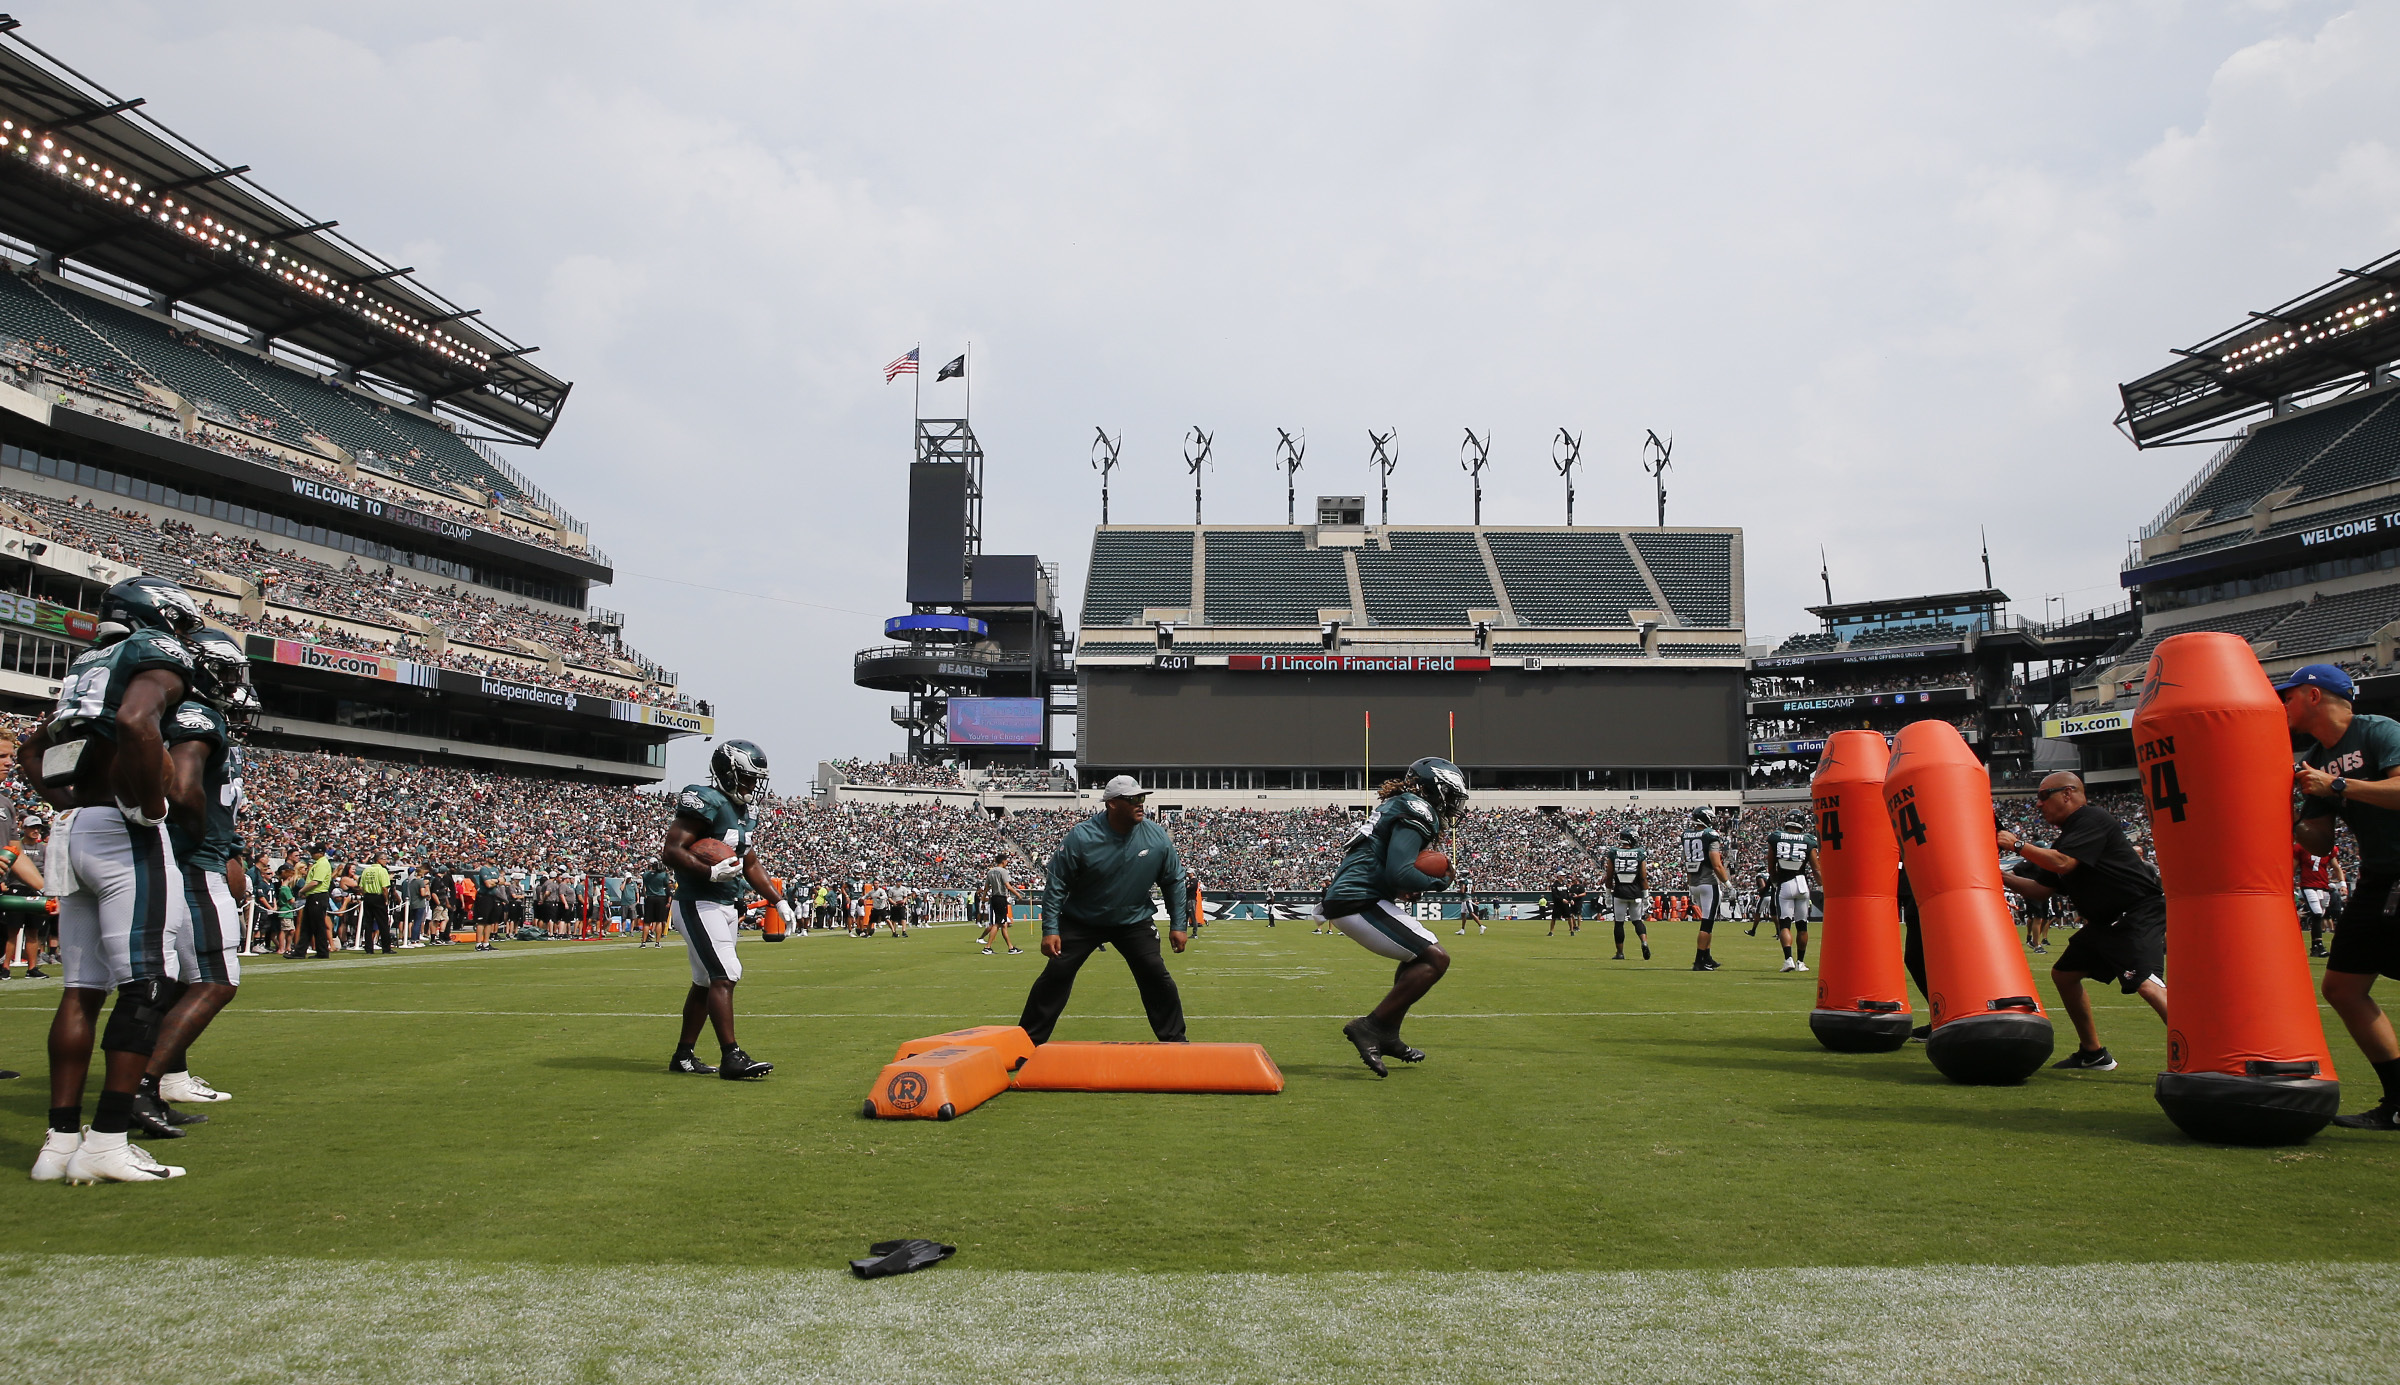 Eagles running backs run drills during an open practice at Lincoln Financial Field in South Philadelphia on Saturday, August 11, 2018.